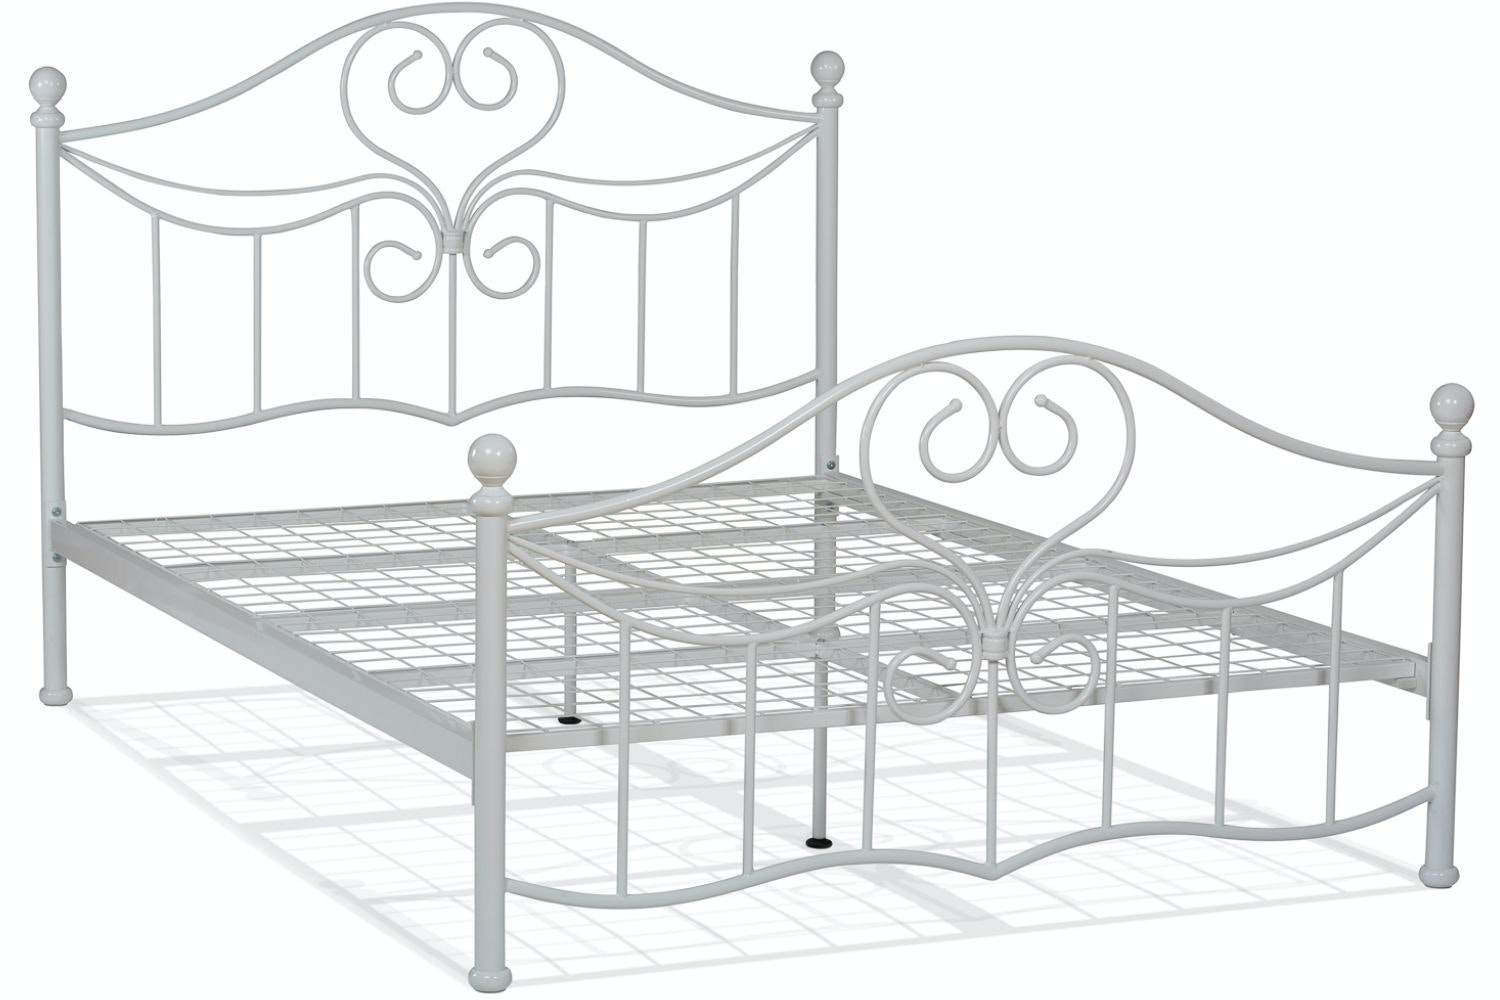 Julliet Double Metal Bed Frame | 4ft6 | White